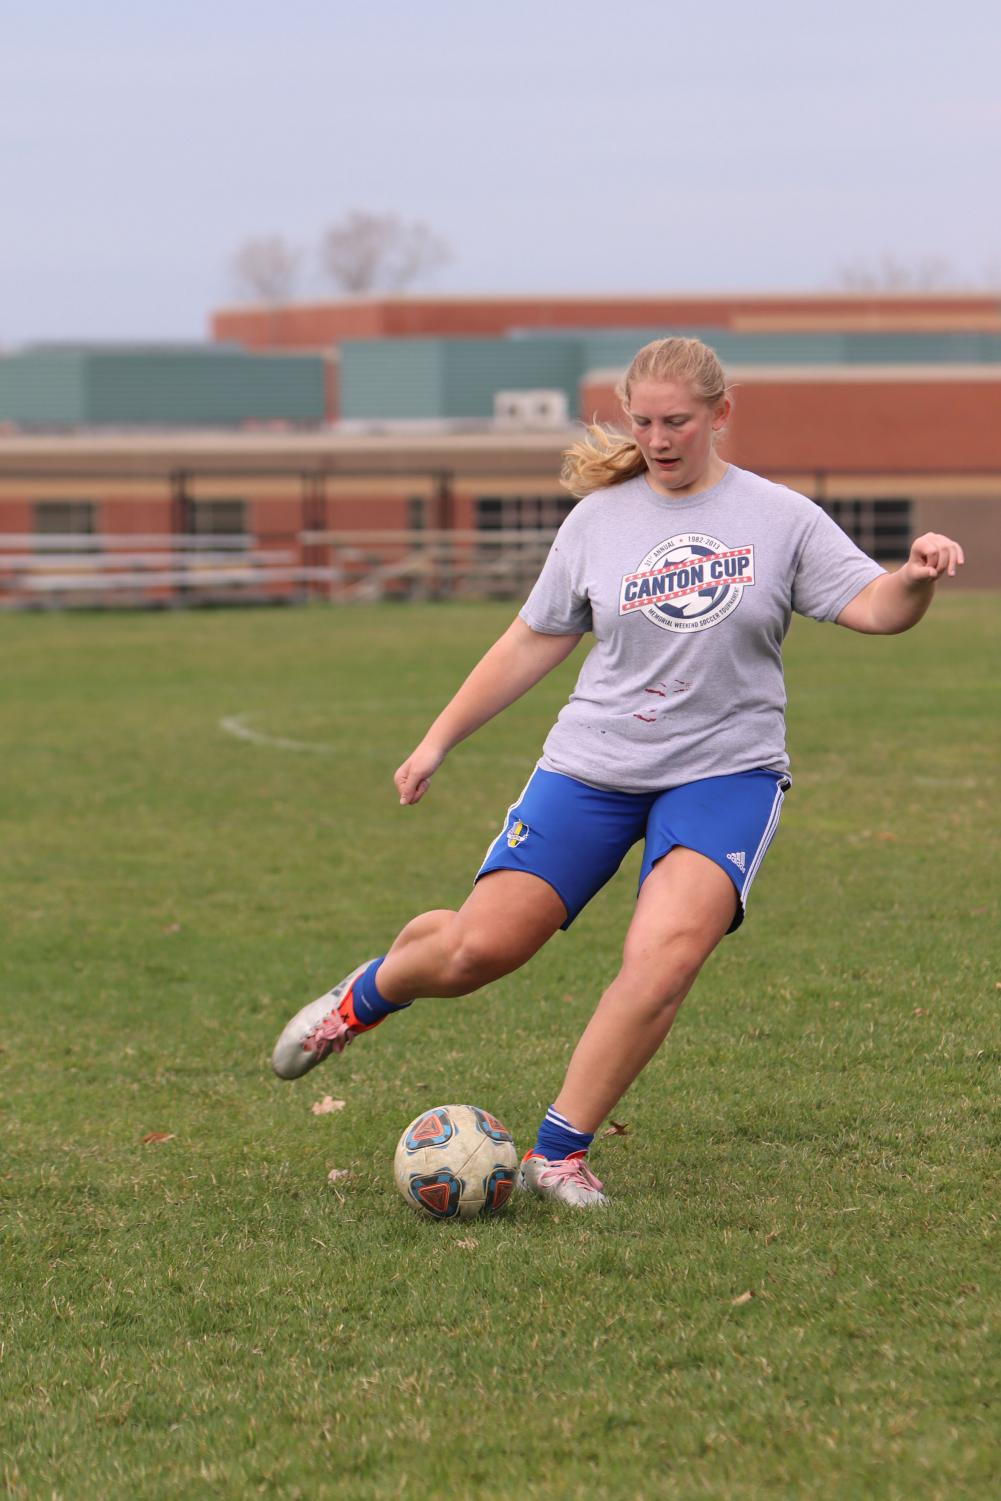 During soccer practice, sophomore Jillian McVey gets into goal shooting position to kick the ball. On April 16, the JV girls soccer team held their daily practice to prepare for upcoming games.